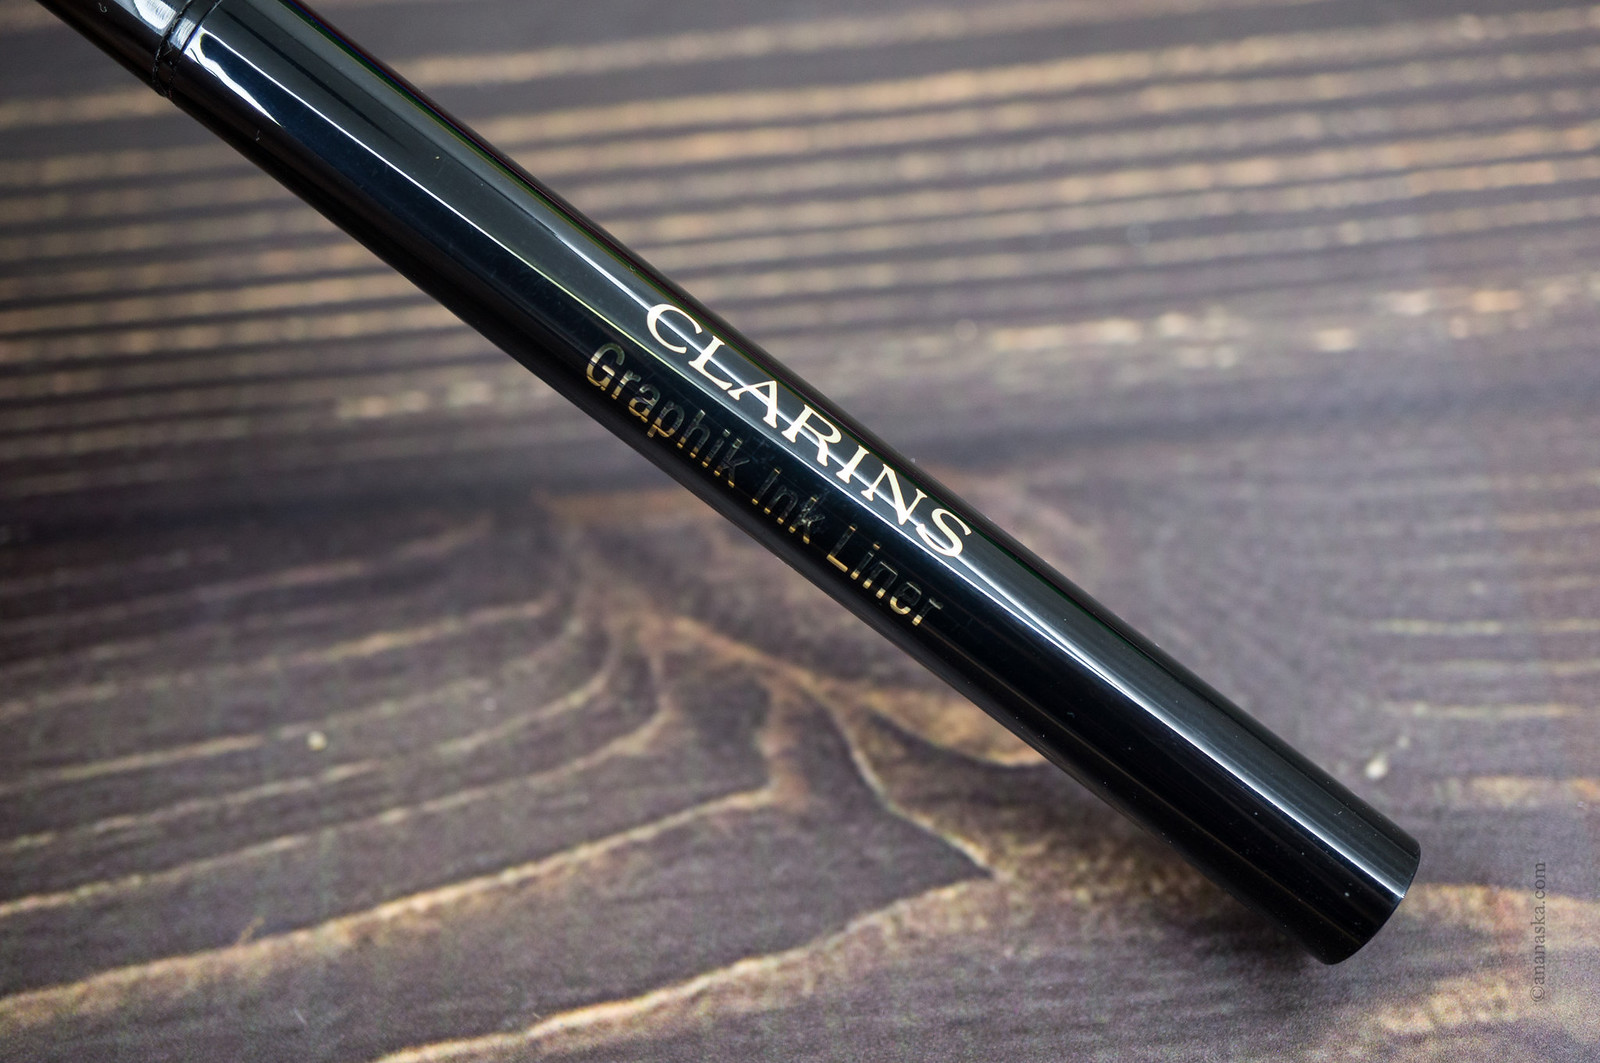 Clarins Graphik Ink Liner